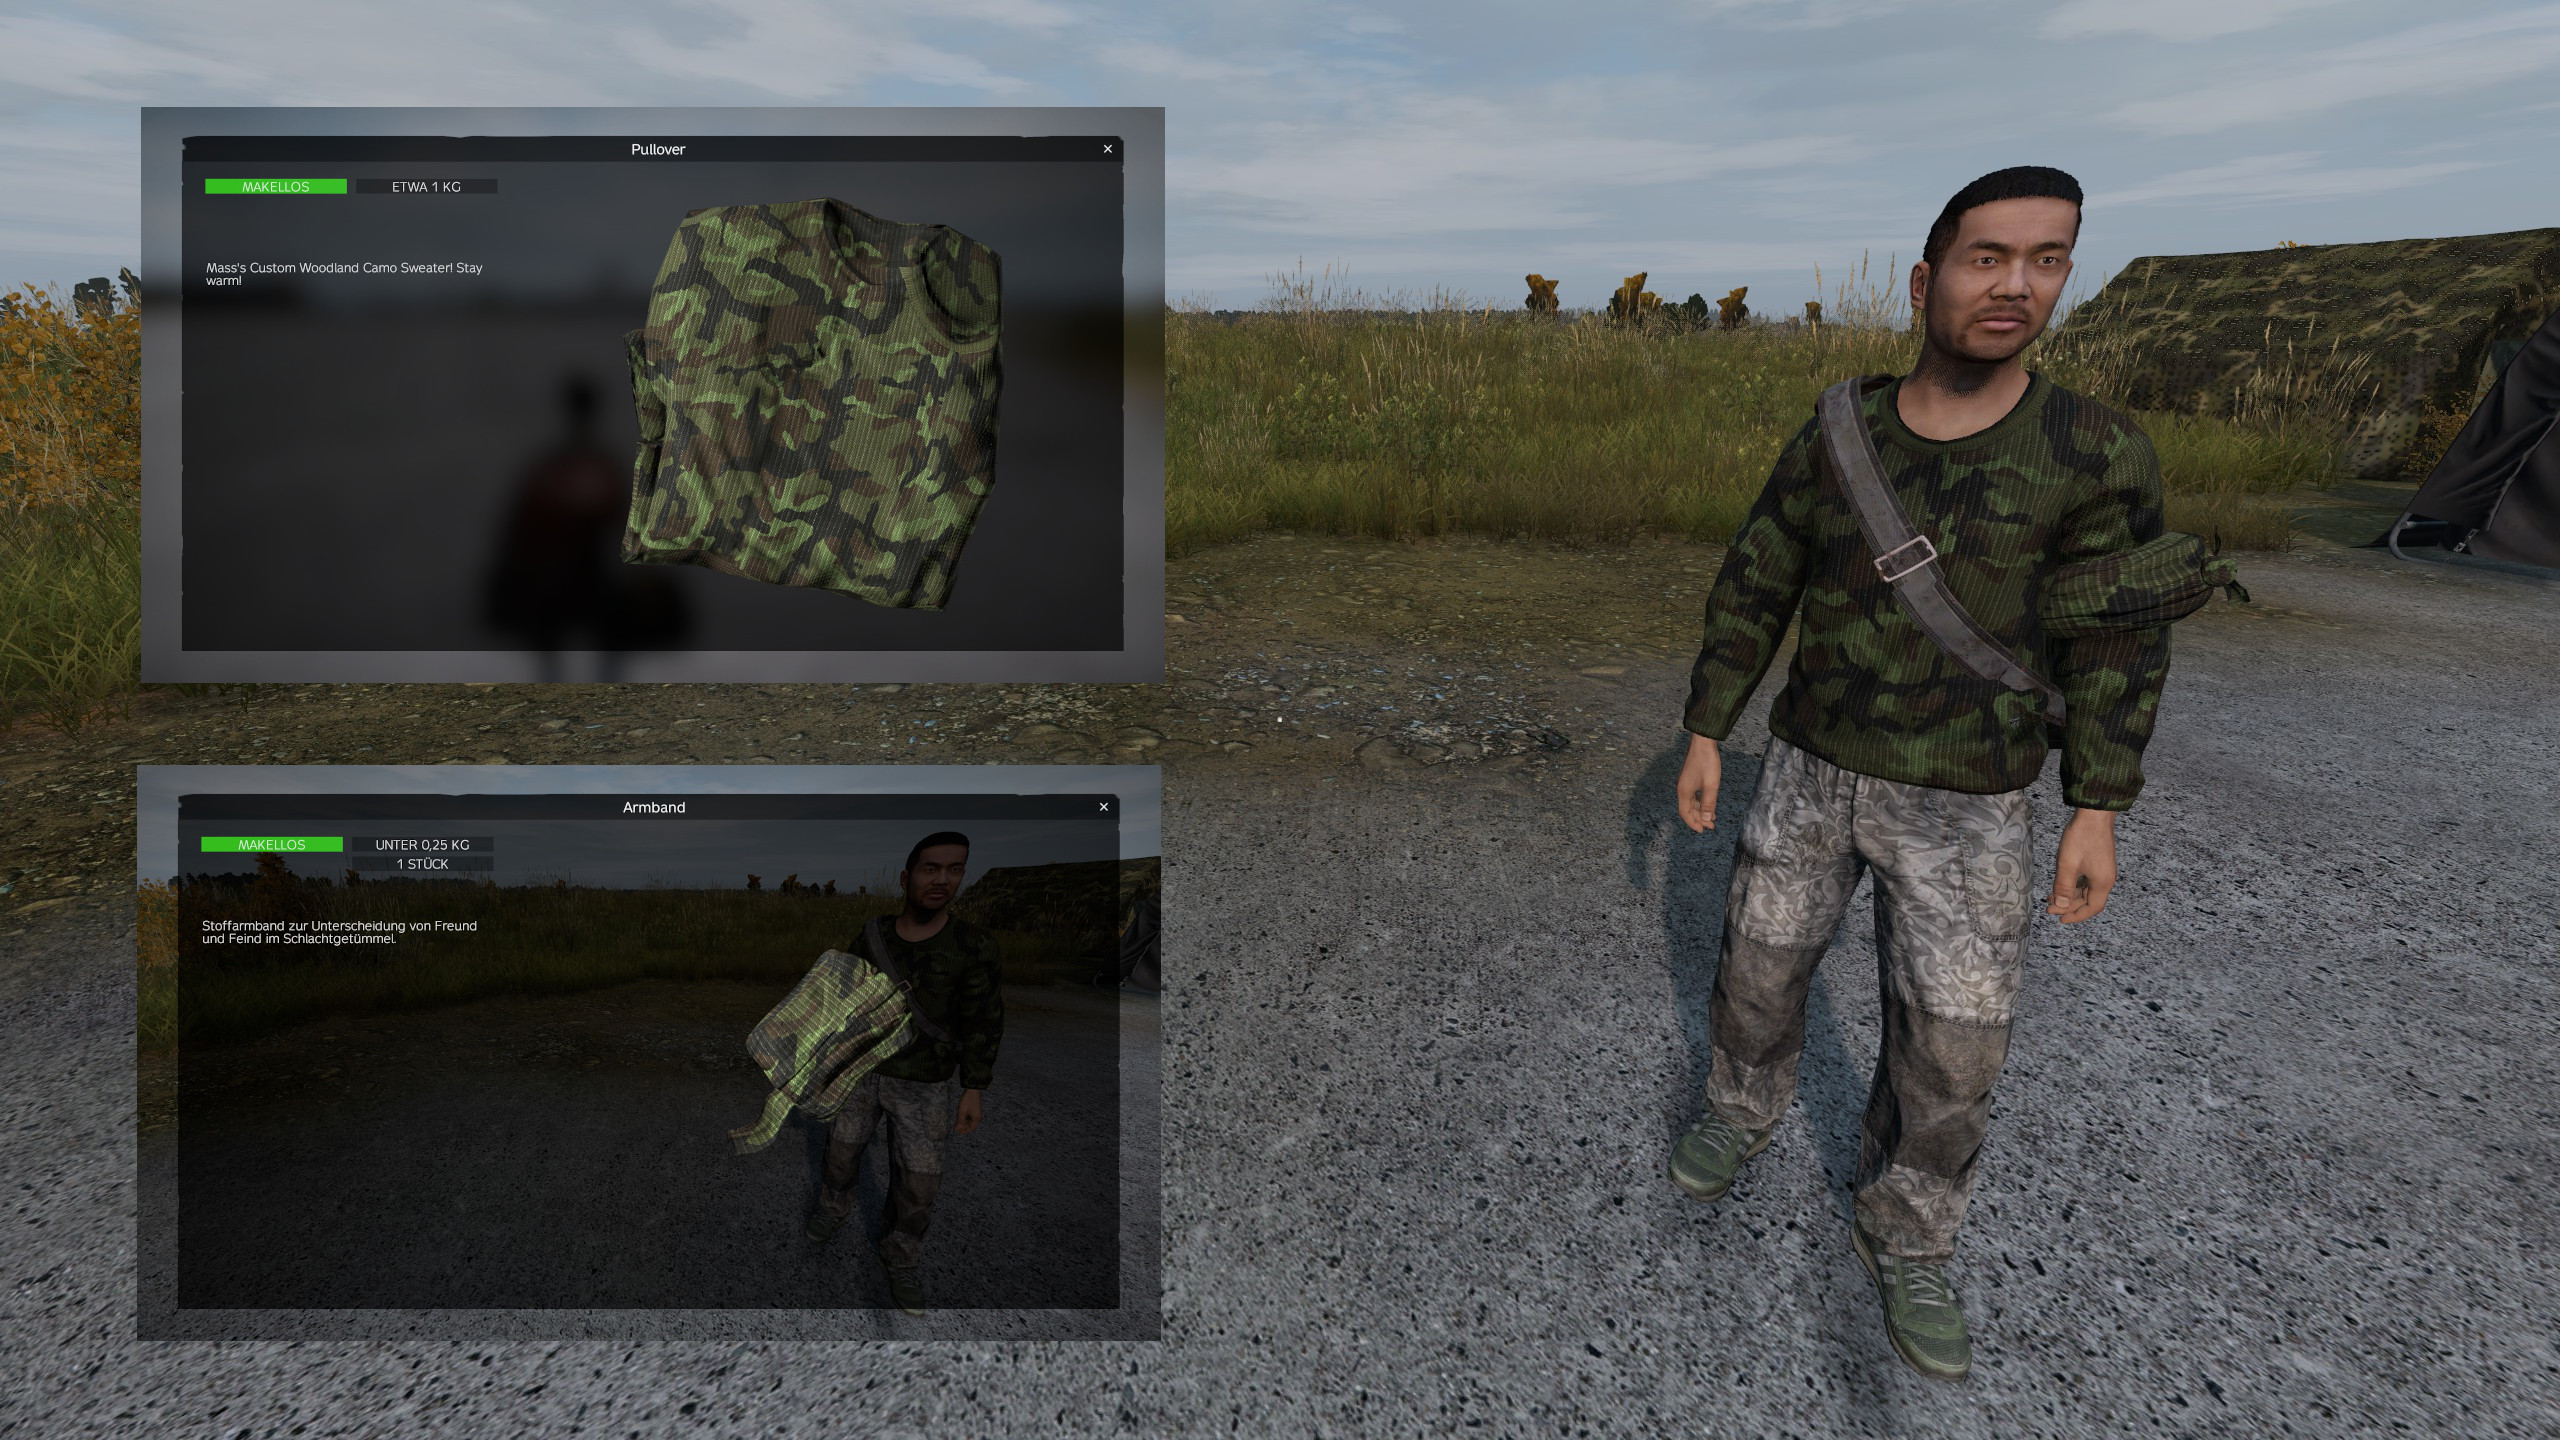 8-mass-custom-woodlandcamosweater.jpg